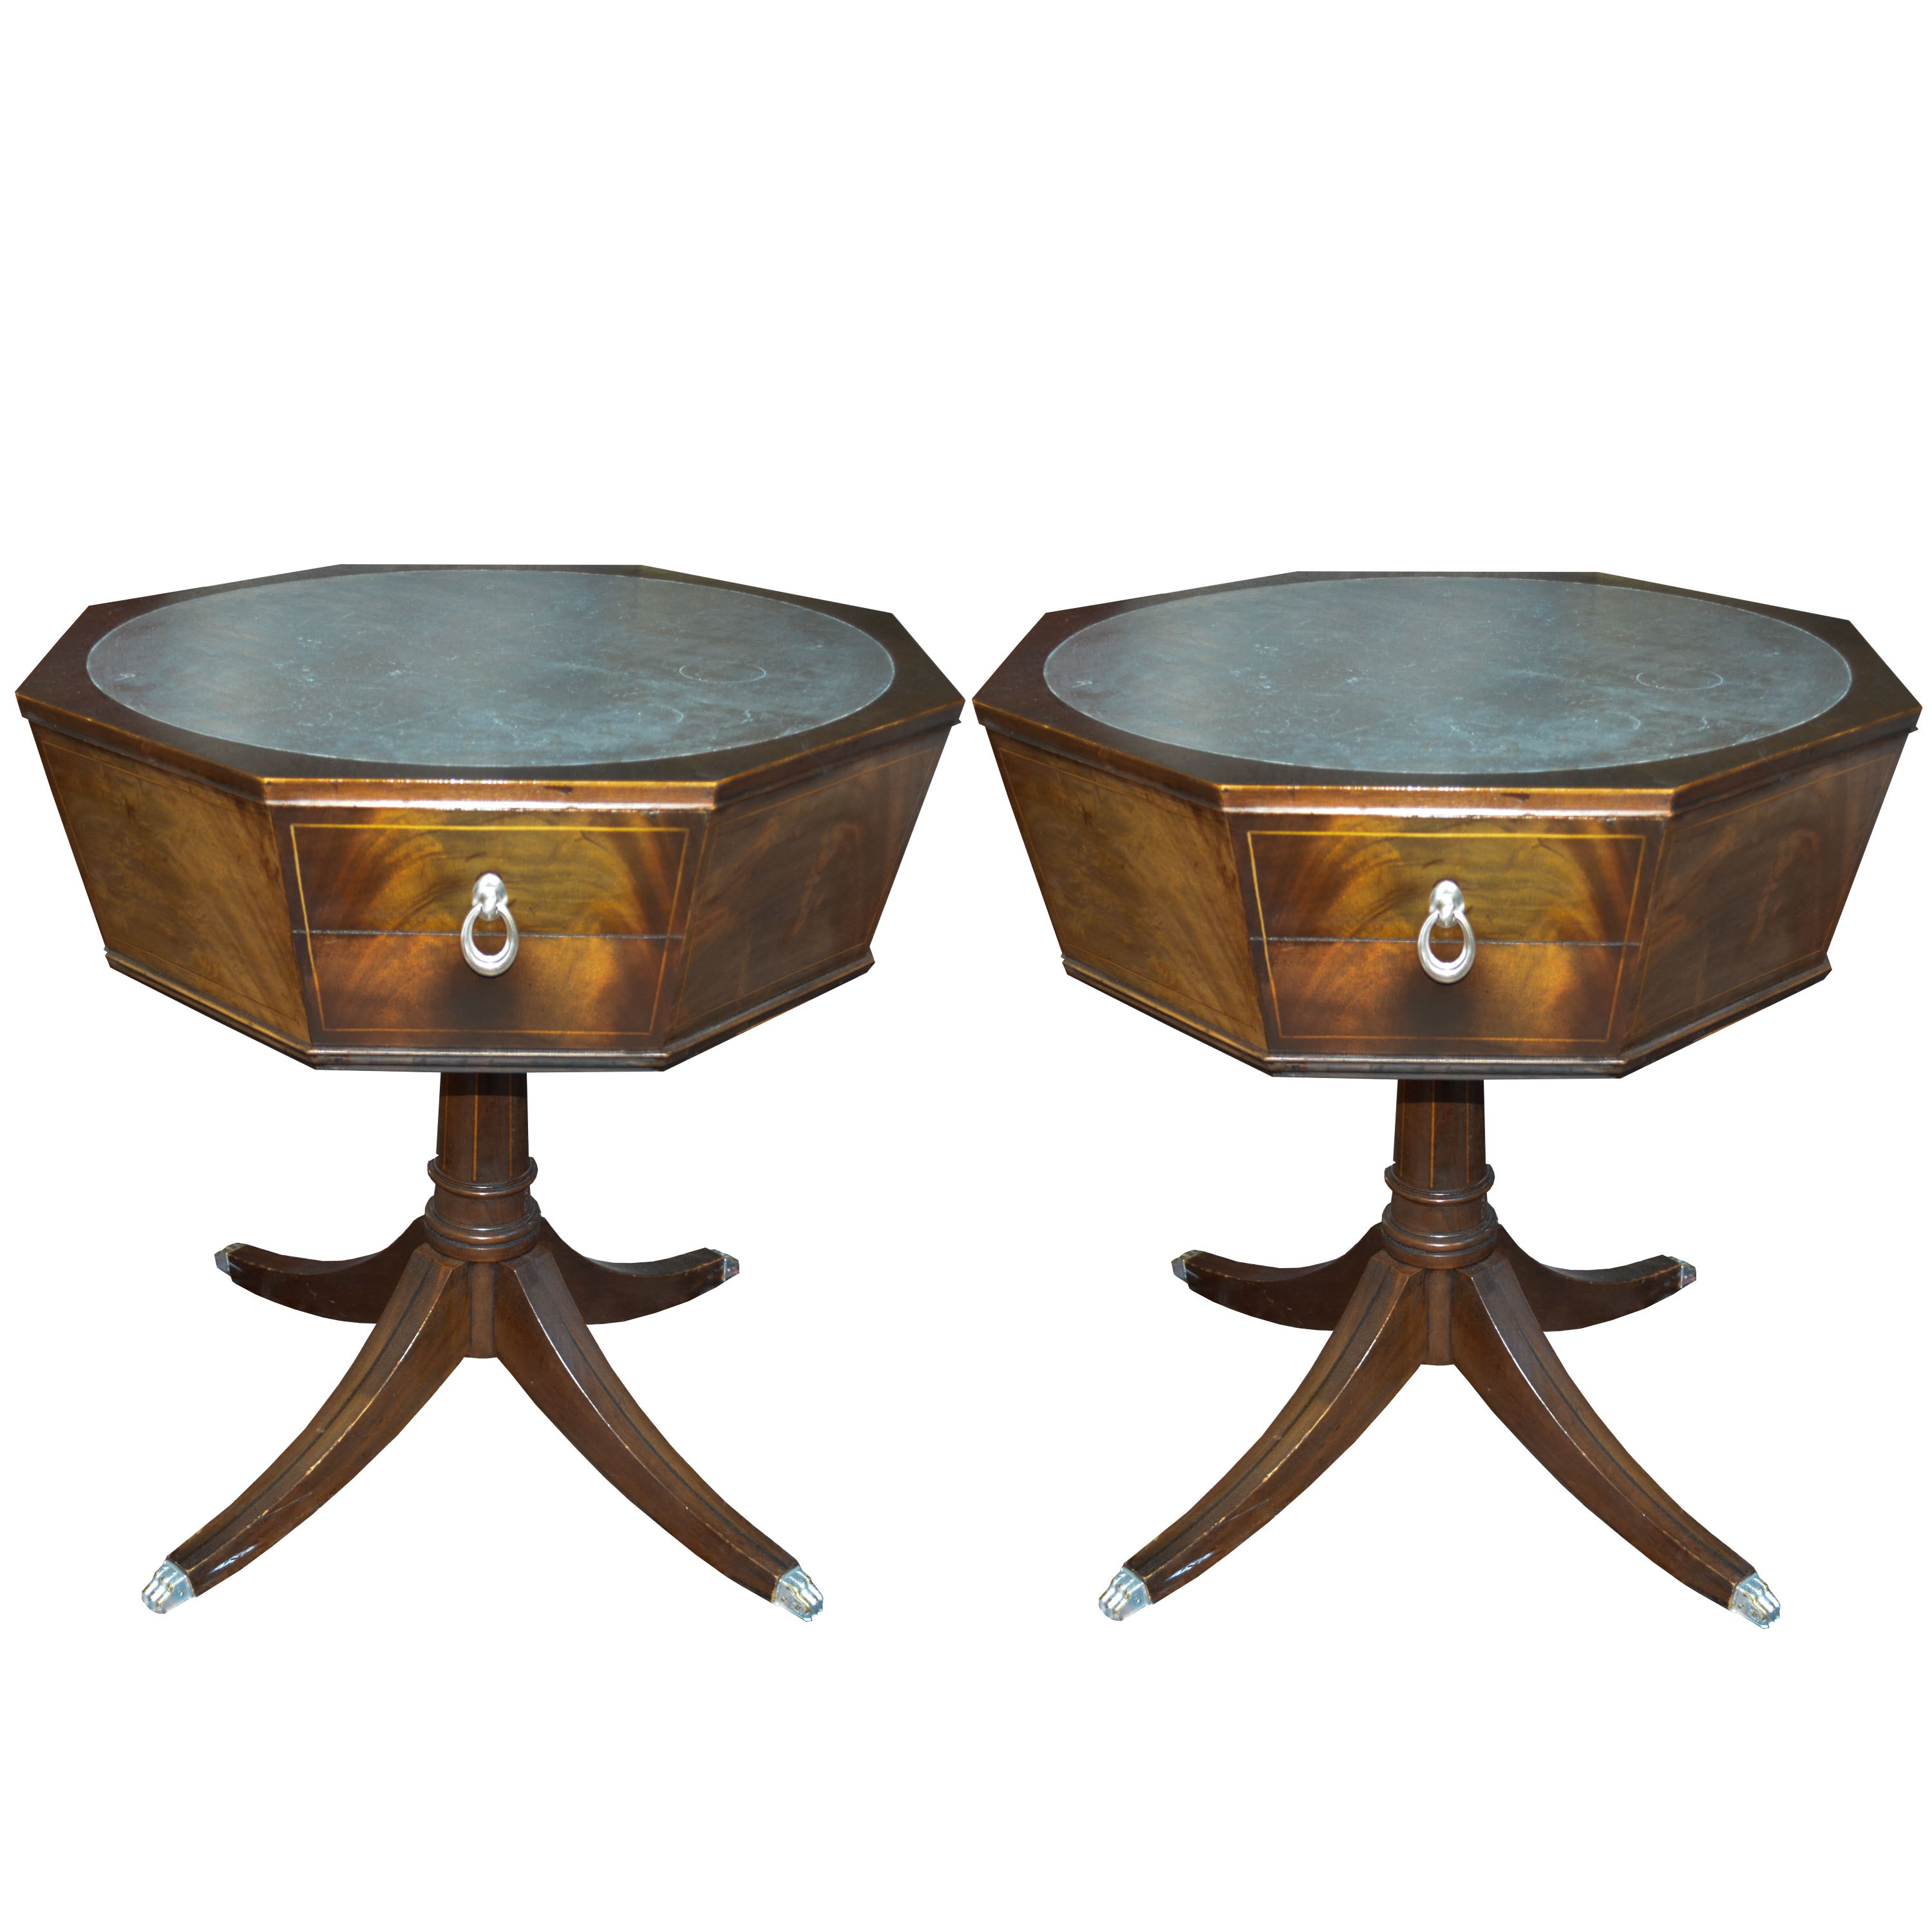 Pair of Circa 1940s Flamed Mahogany Drum Tables